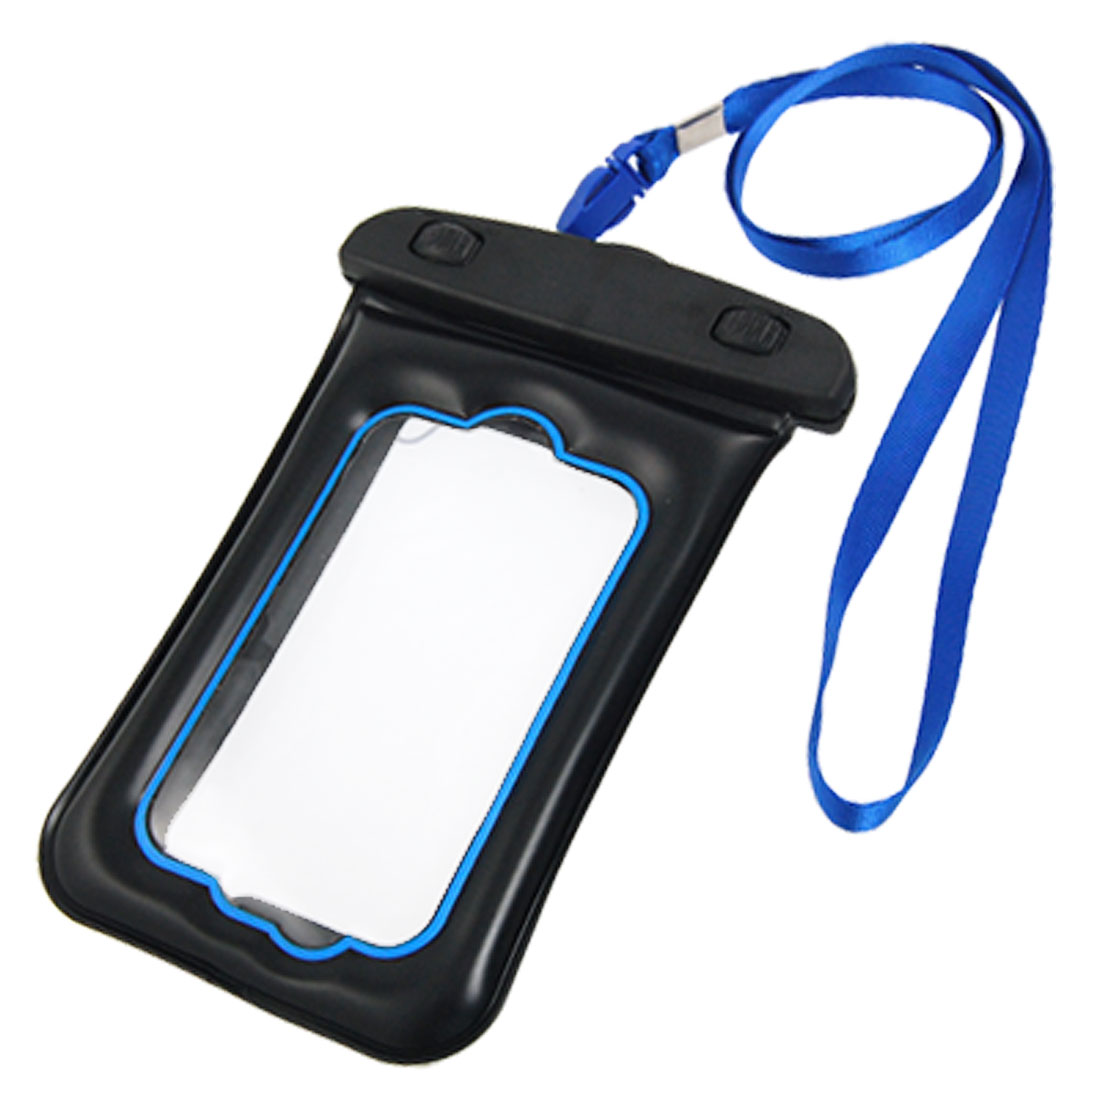 Black Blue Protective Neck Strap Plastic Water Resistant Bag for Cell Phone